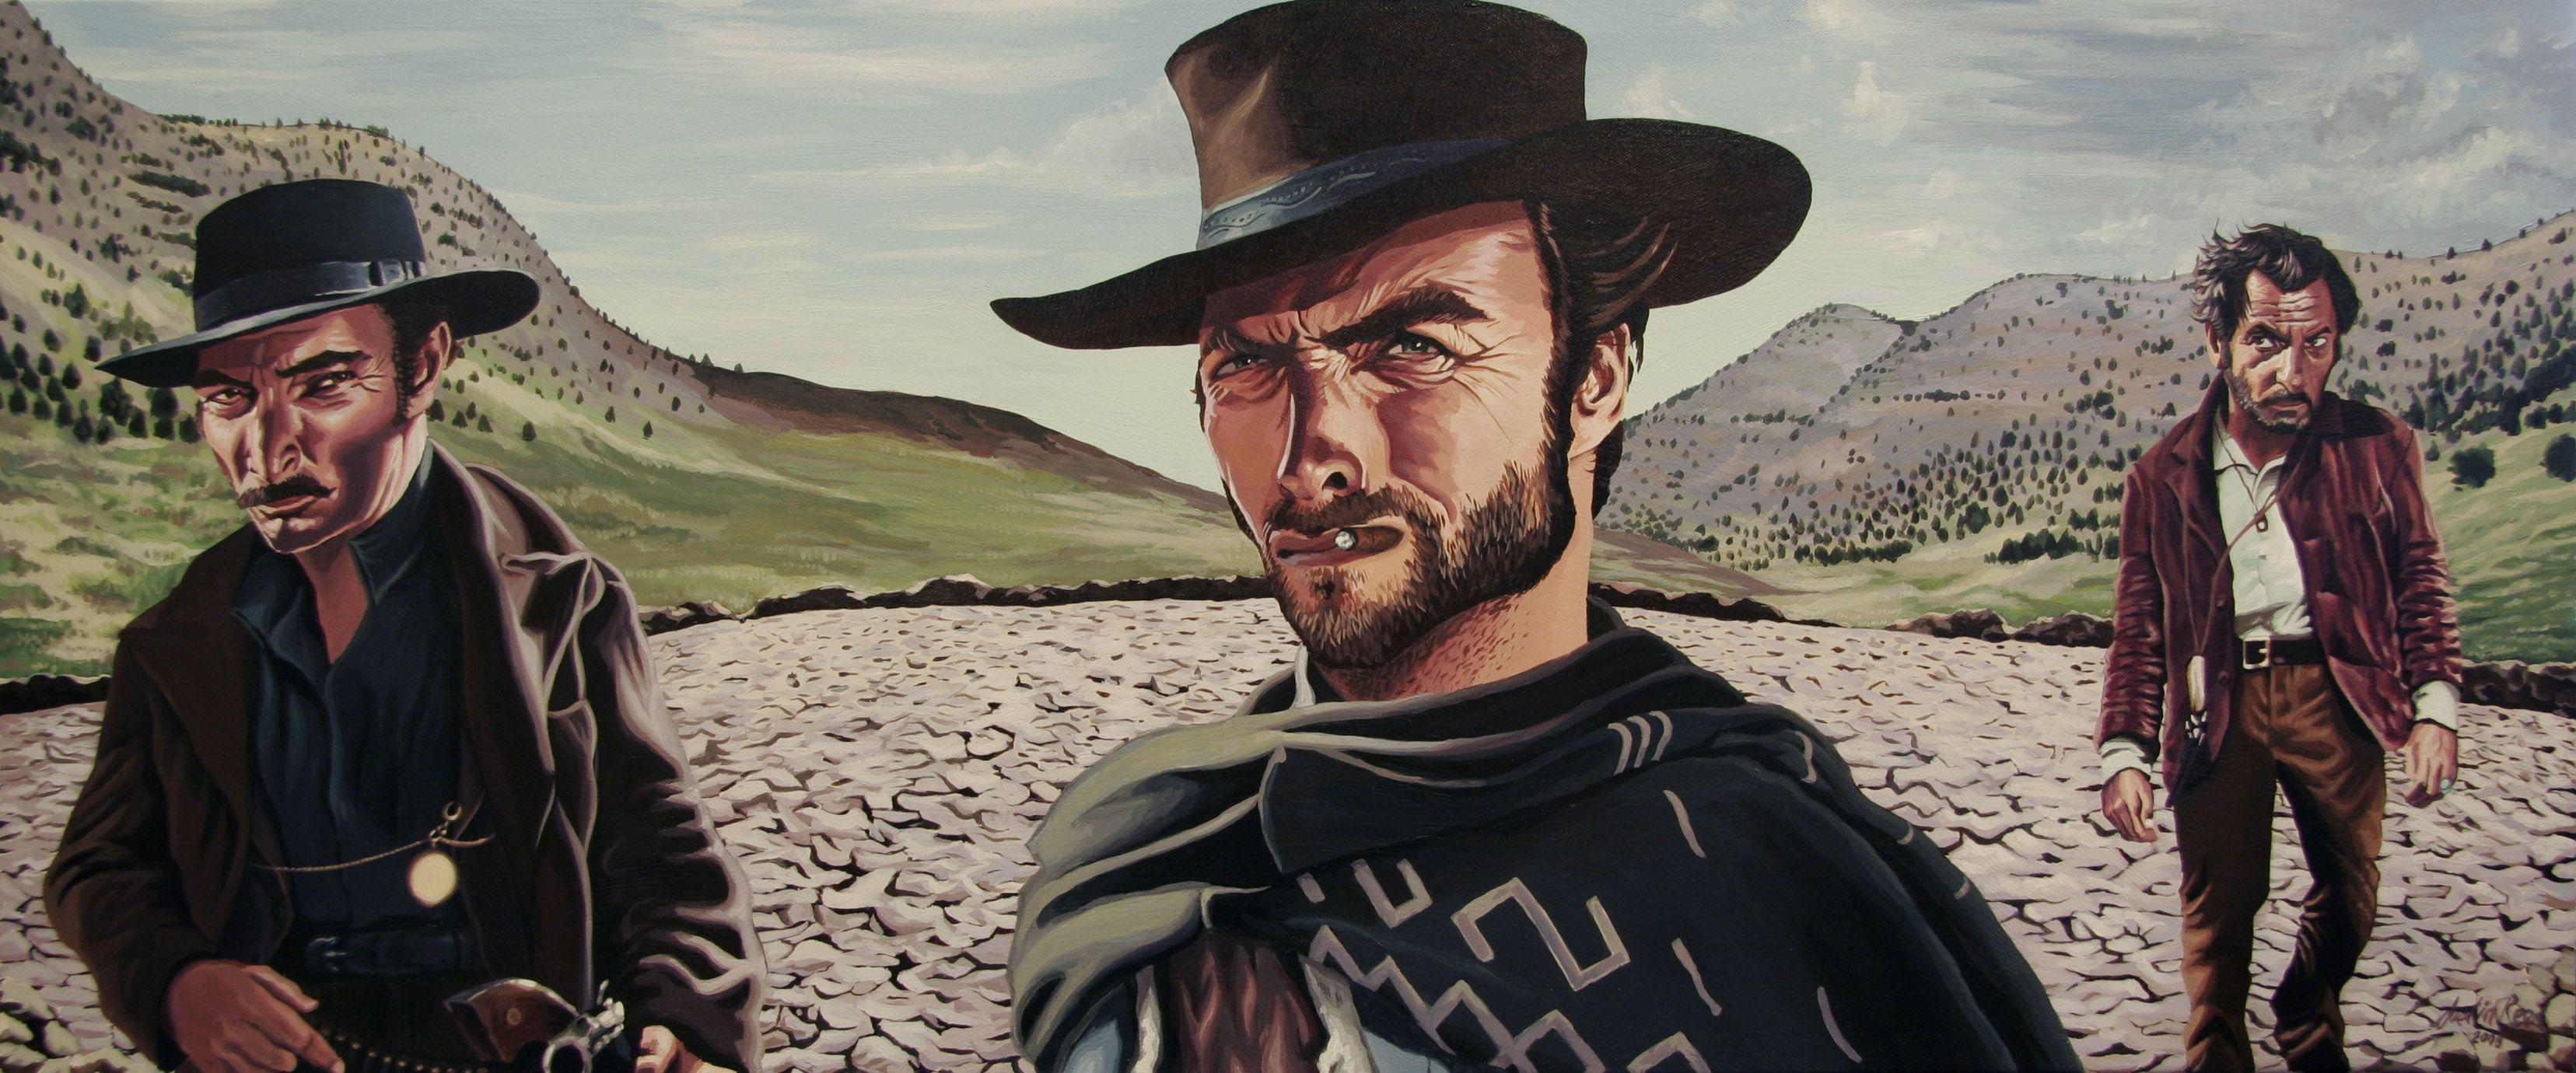 THE GOOD THE BAD AND THE UGLY western clint eastwood g wallpapers